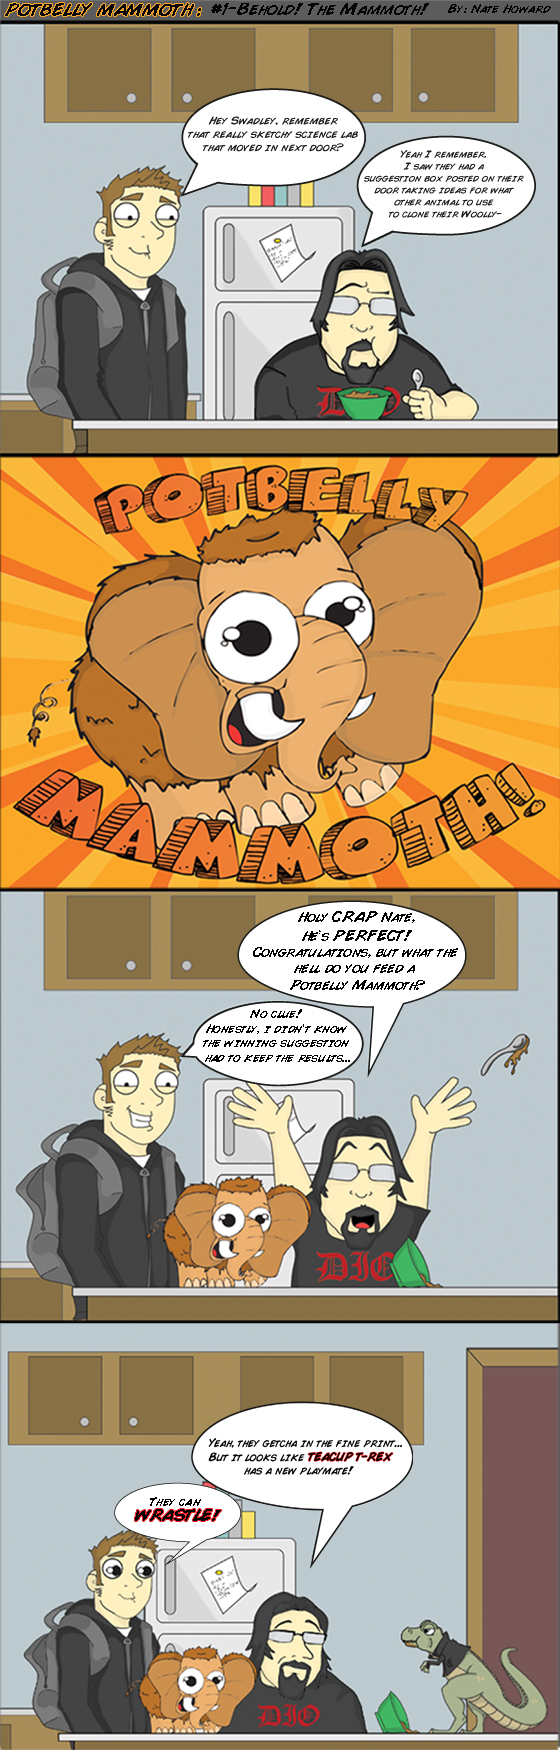 #1 BEHOLD! The Mammoth